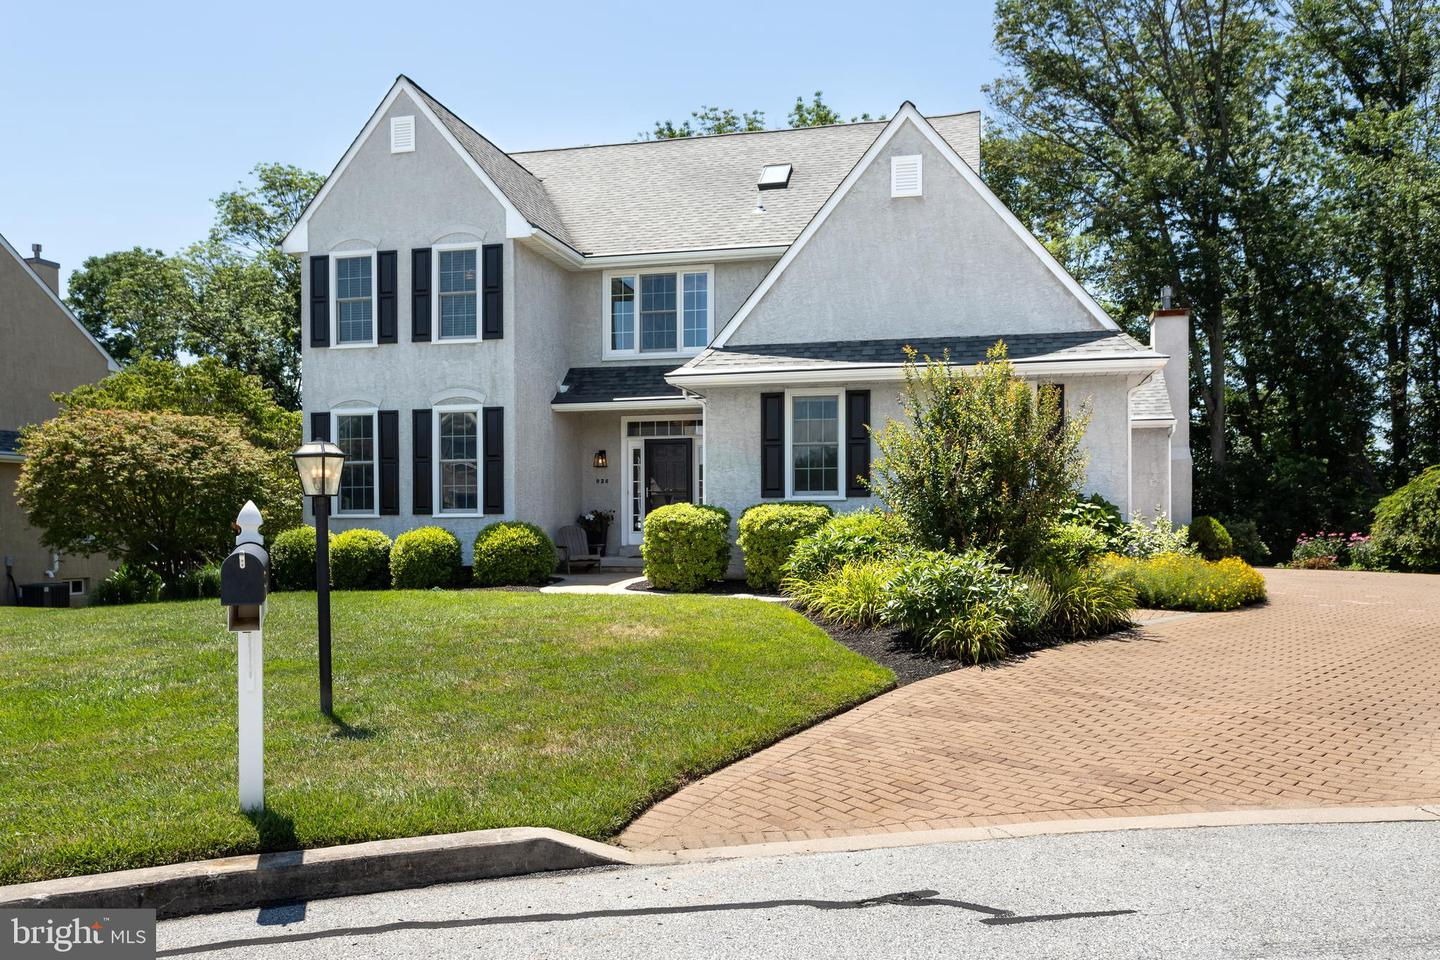 926 Merrit Circle West Chester , PA 19380